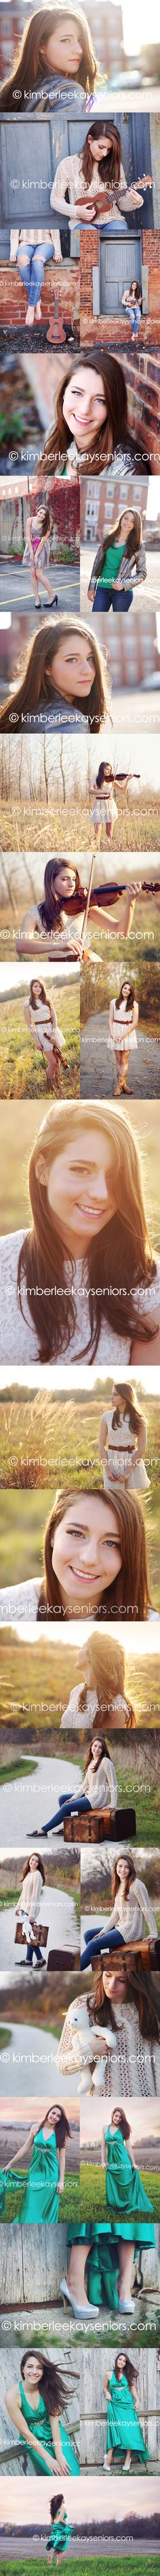 Wheaton Academy Senior Photographer | Kimberlee Kay Photography, Aurora IL